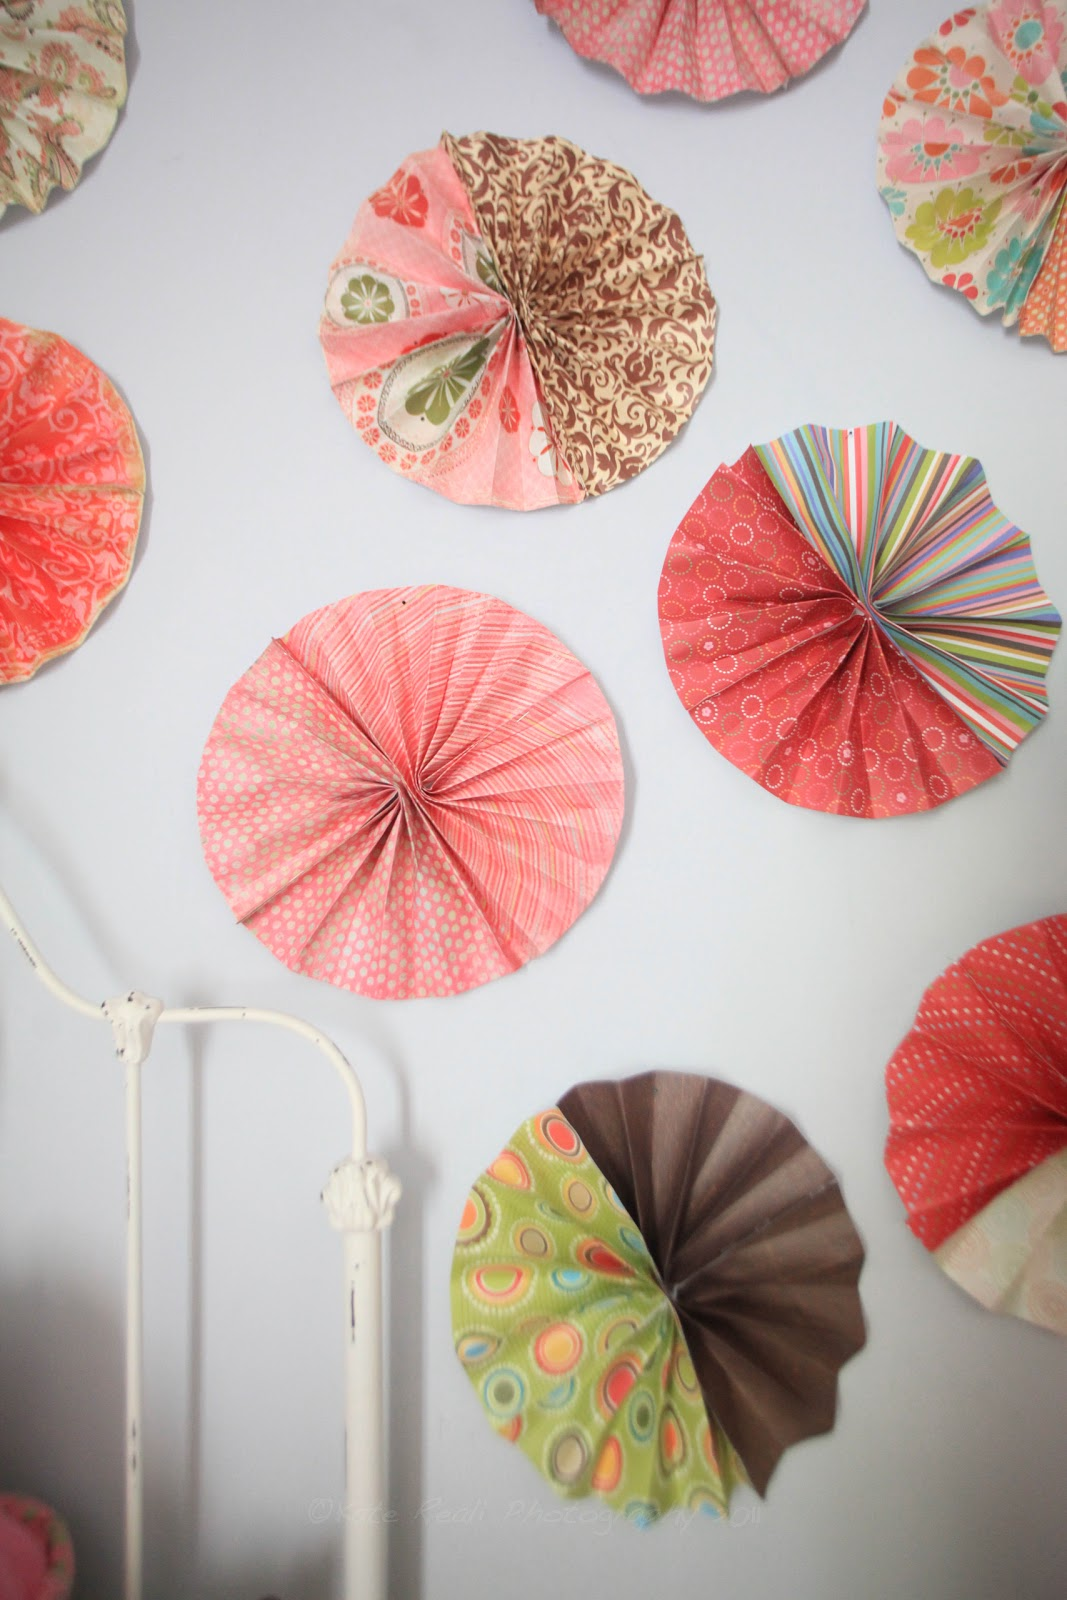 Room Decorating With Paper Ramblings From Utopia Craft Corner Decorating With Paper Fans